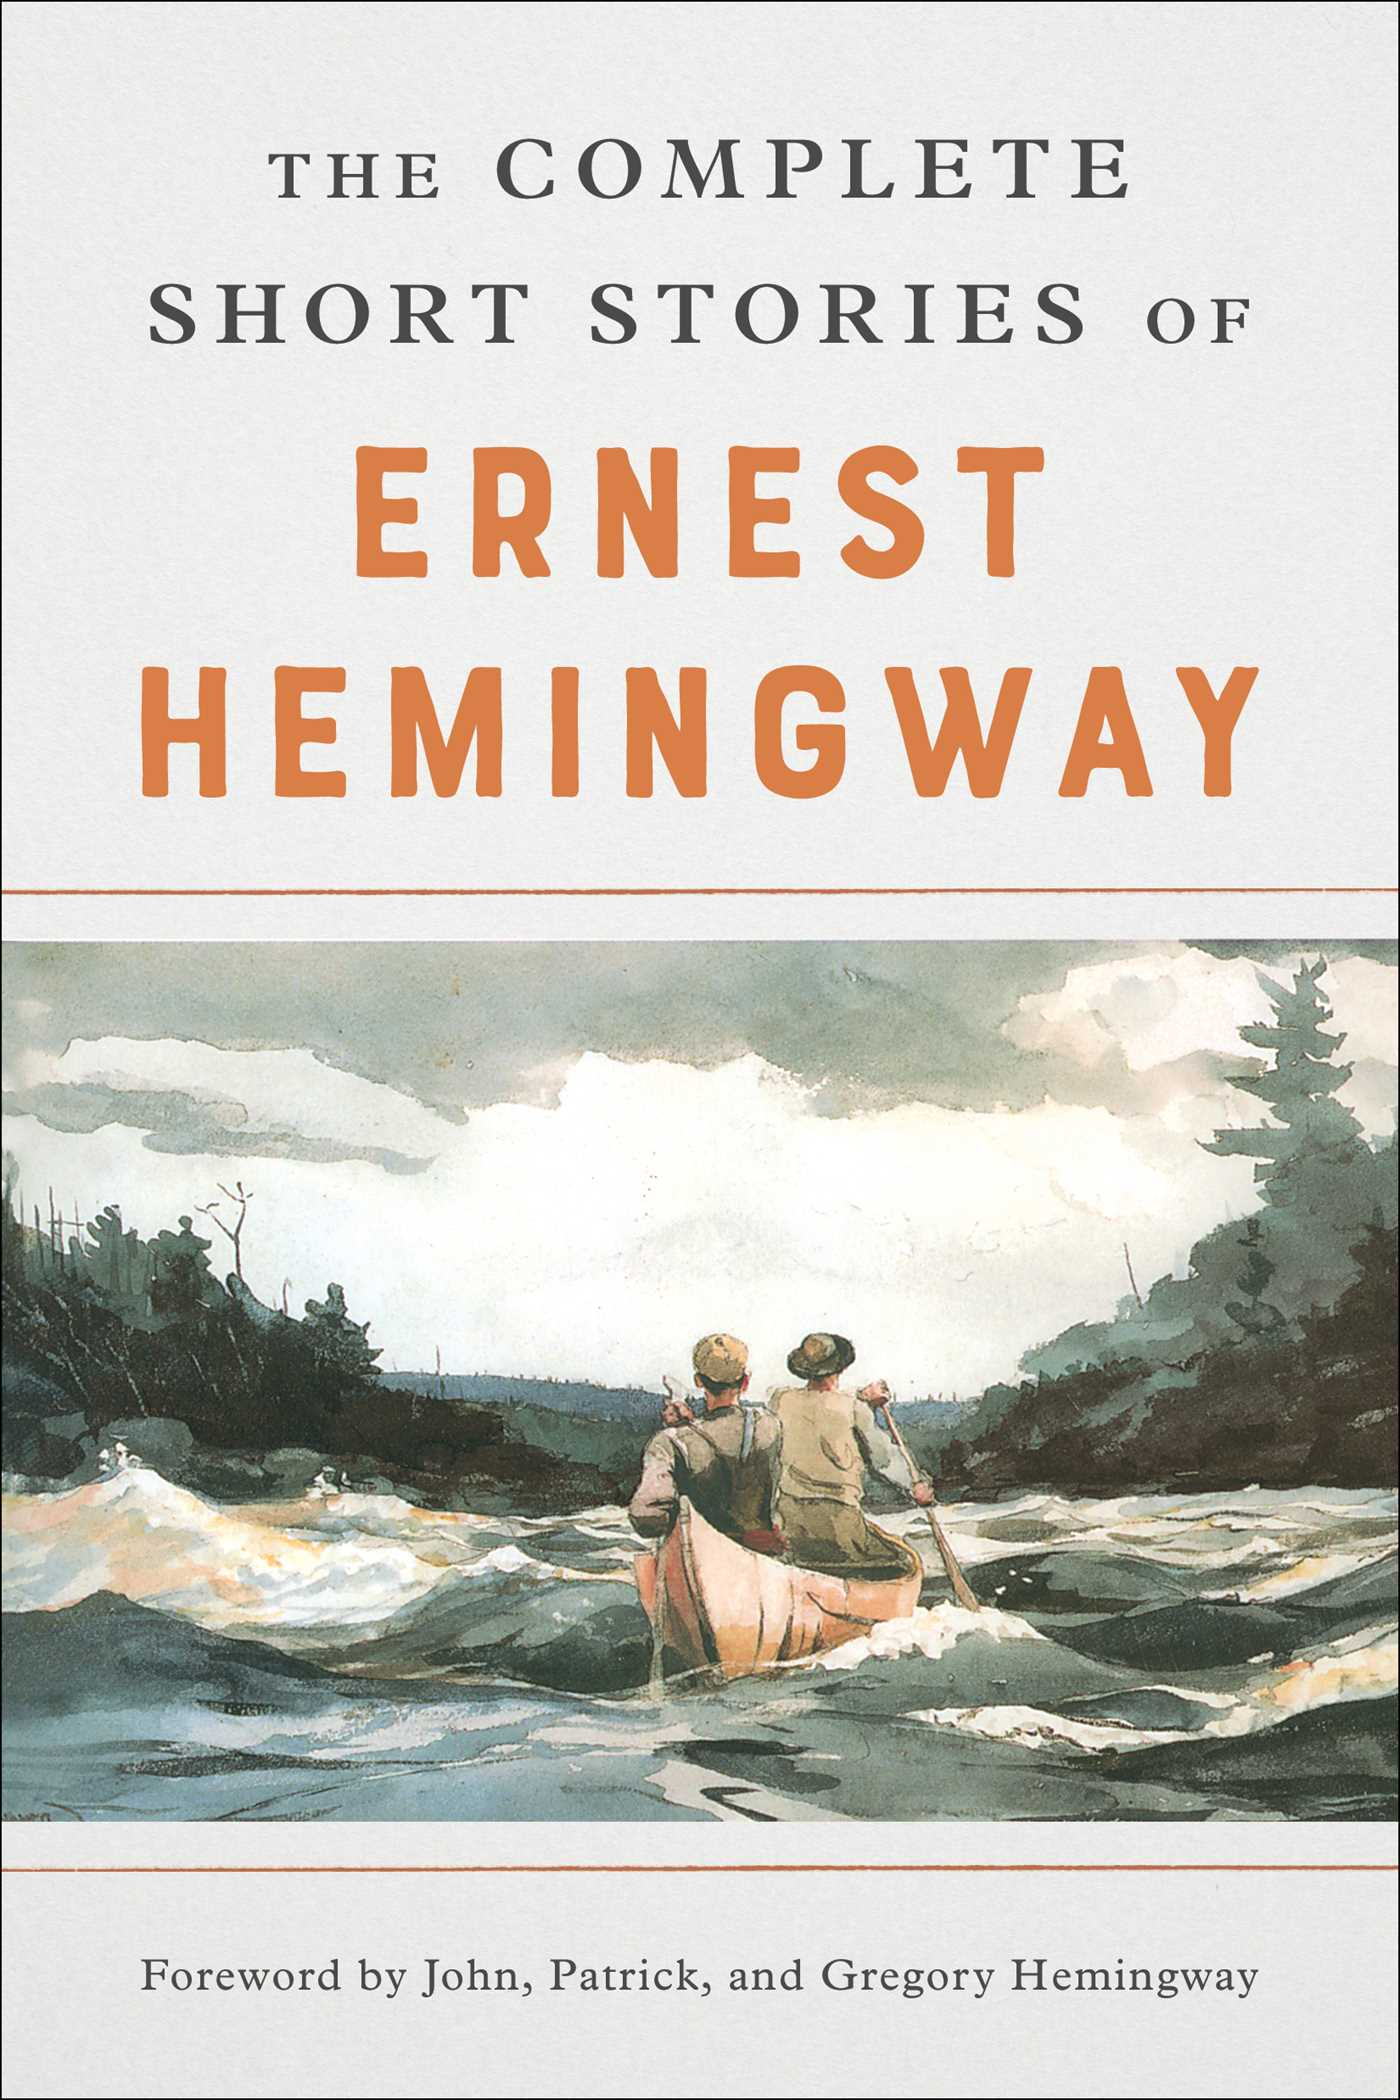 The complete short stories of ernest hemingway 9781416587293 hr